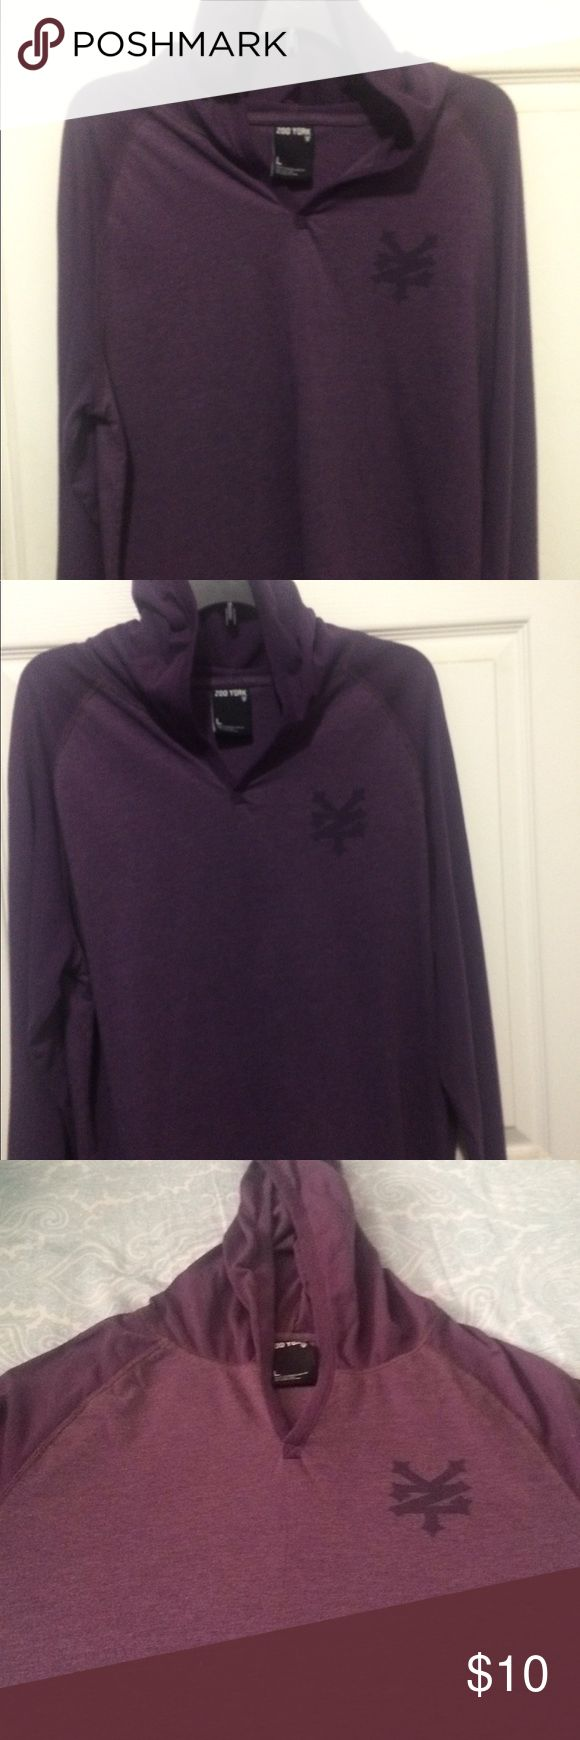 Zoo York Men's Hoodie, Large Men's purple hoodie, purple, large.  This is a light material hoodie good for spring or early morning chill.  Young men will love this! Zoo York Jackets & Coats Lightweight & Shirt Jackets